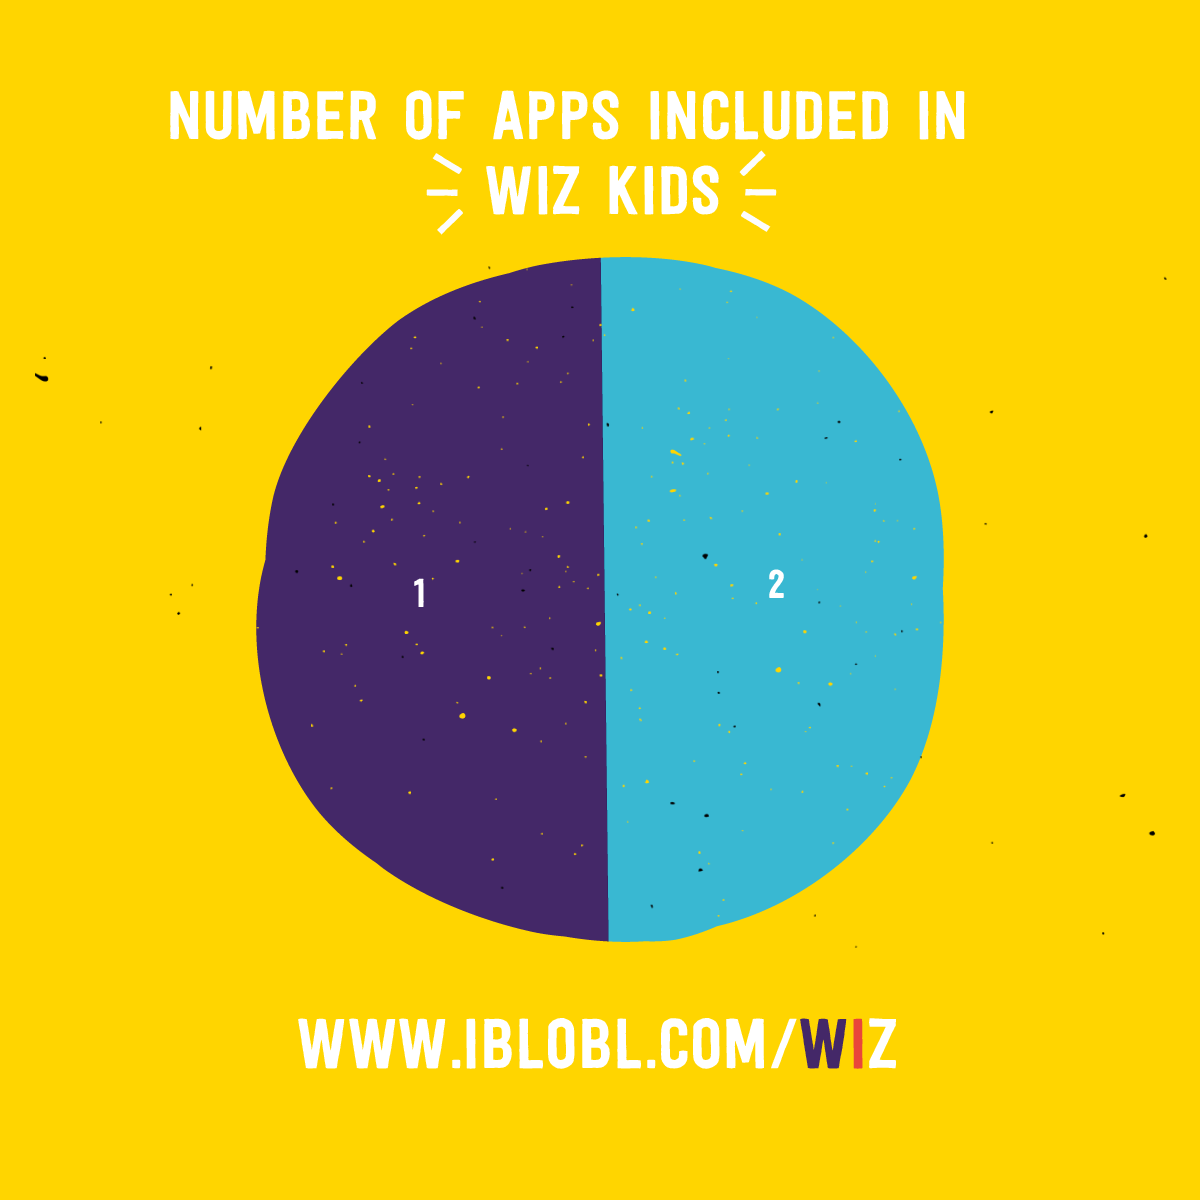 Number of apps in Ibbleobble Wiz Kids